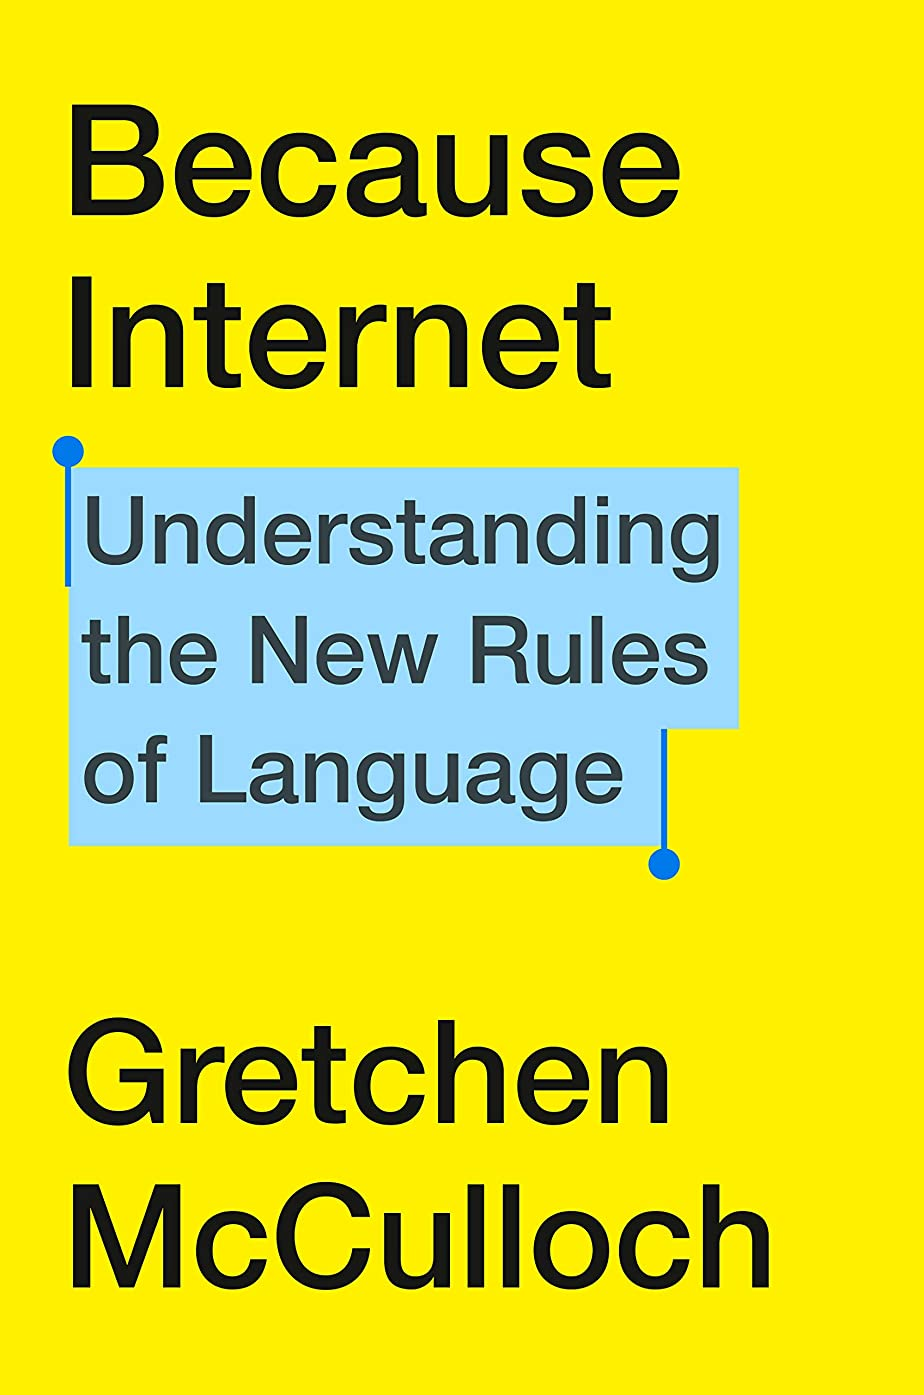 免除するビジュアルトレースBecause Internet: Understanding the New Rules of Language (English Edition)